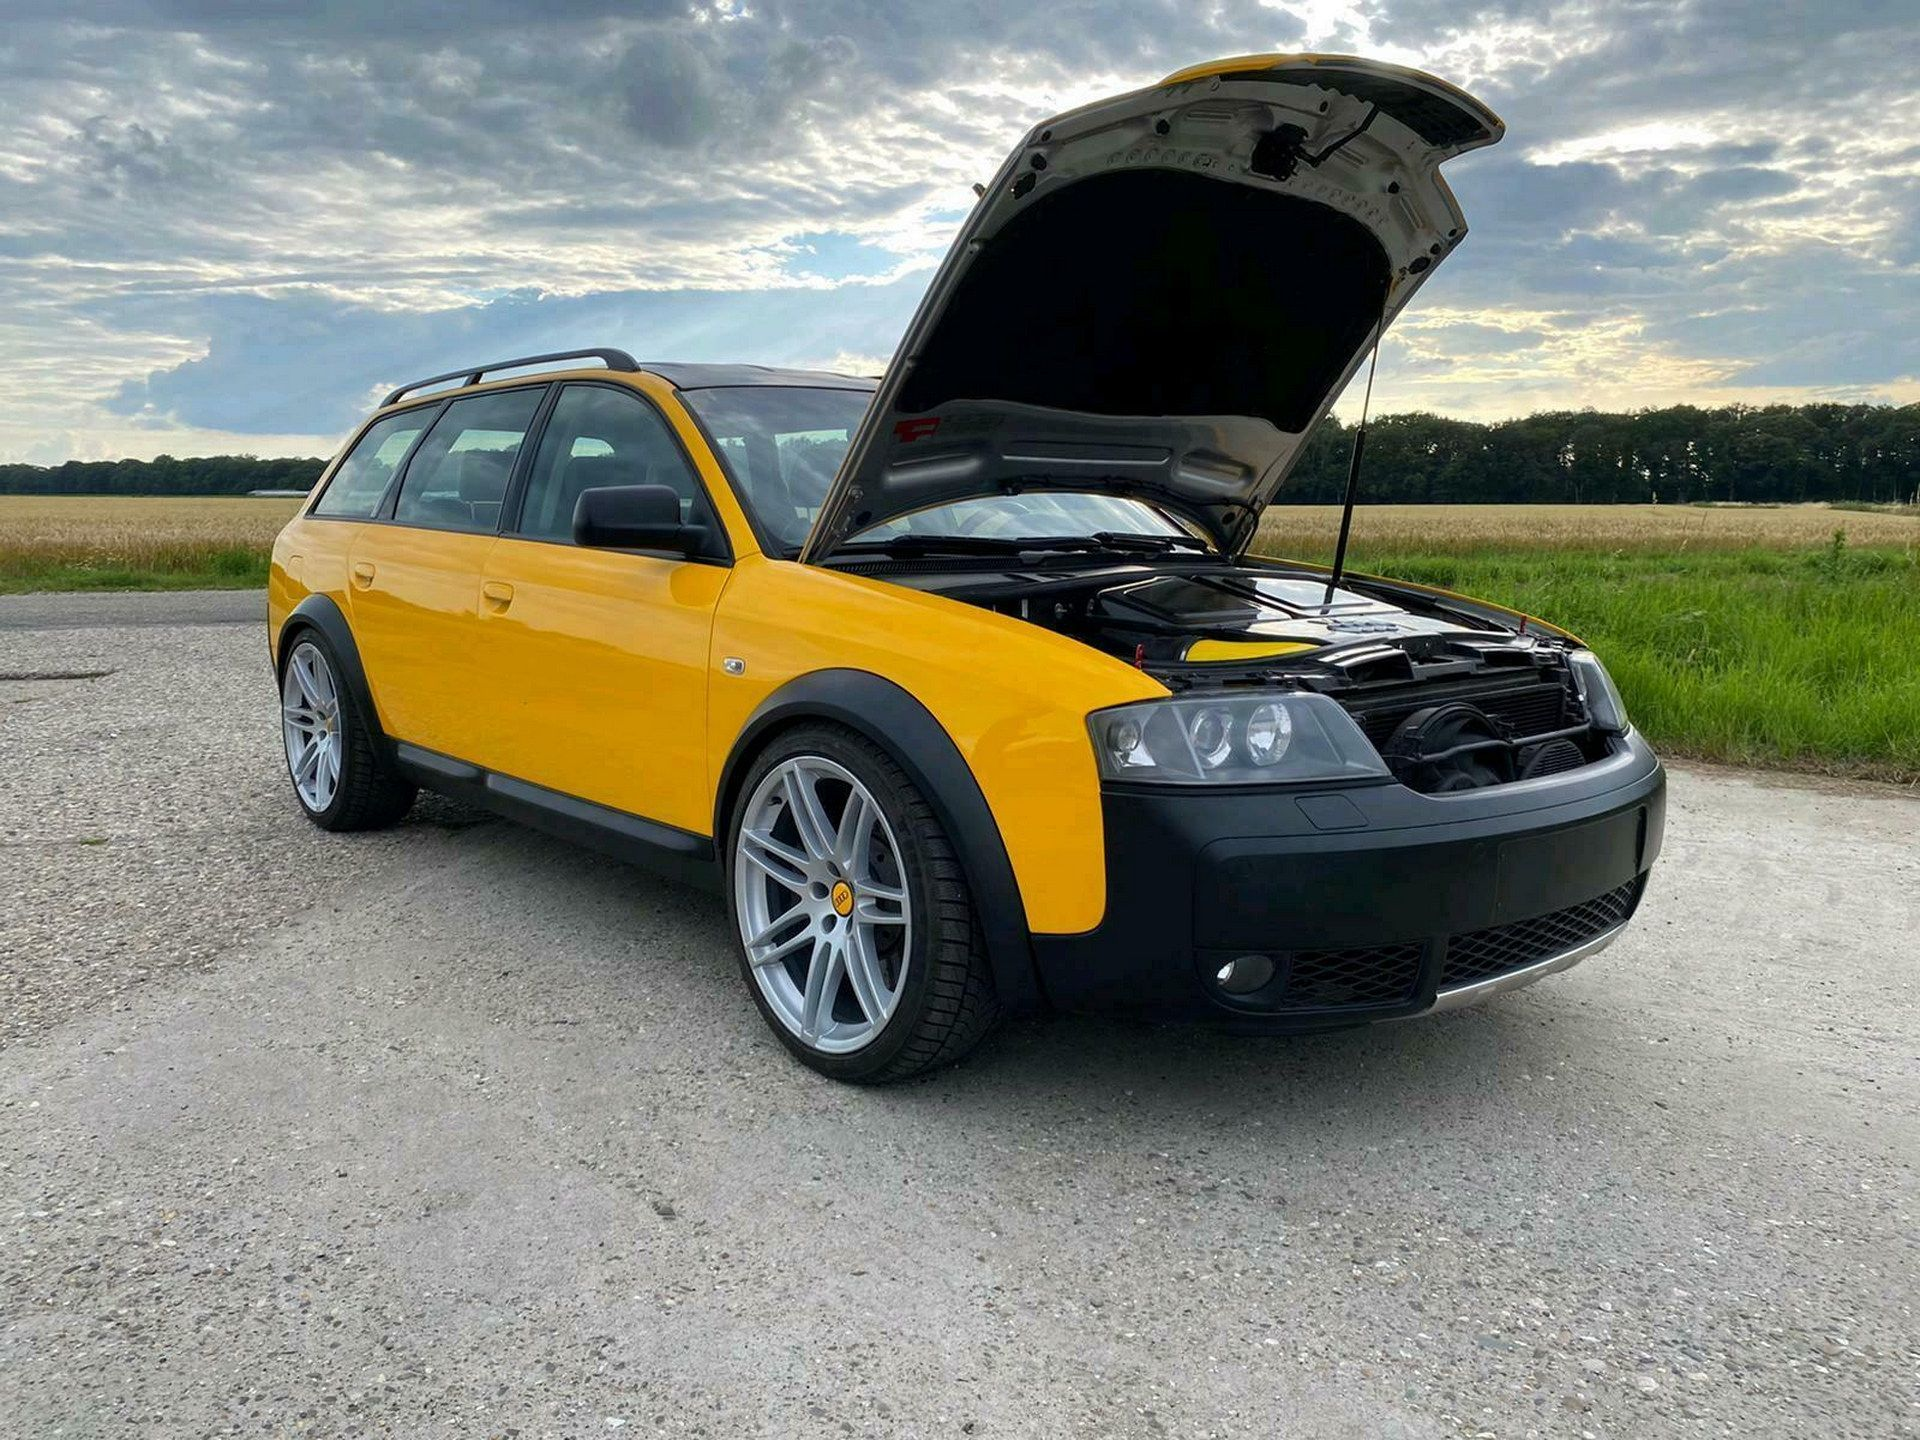 The improvised, homegrown Audi wagon has been built from two cars, and is now on sale with a top bid just under €18,000.